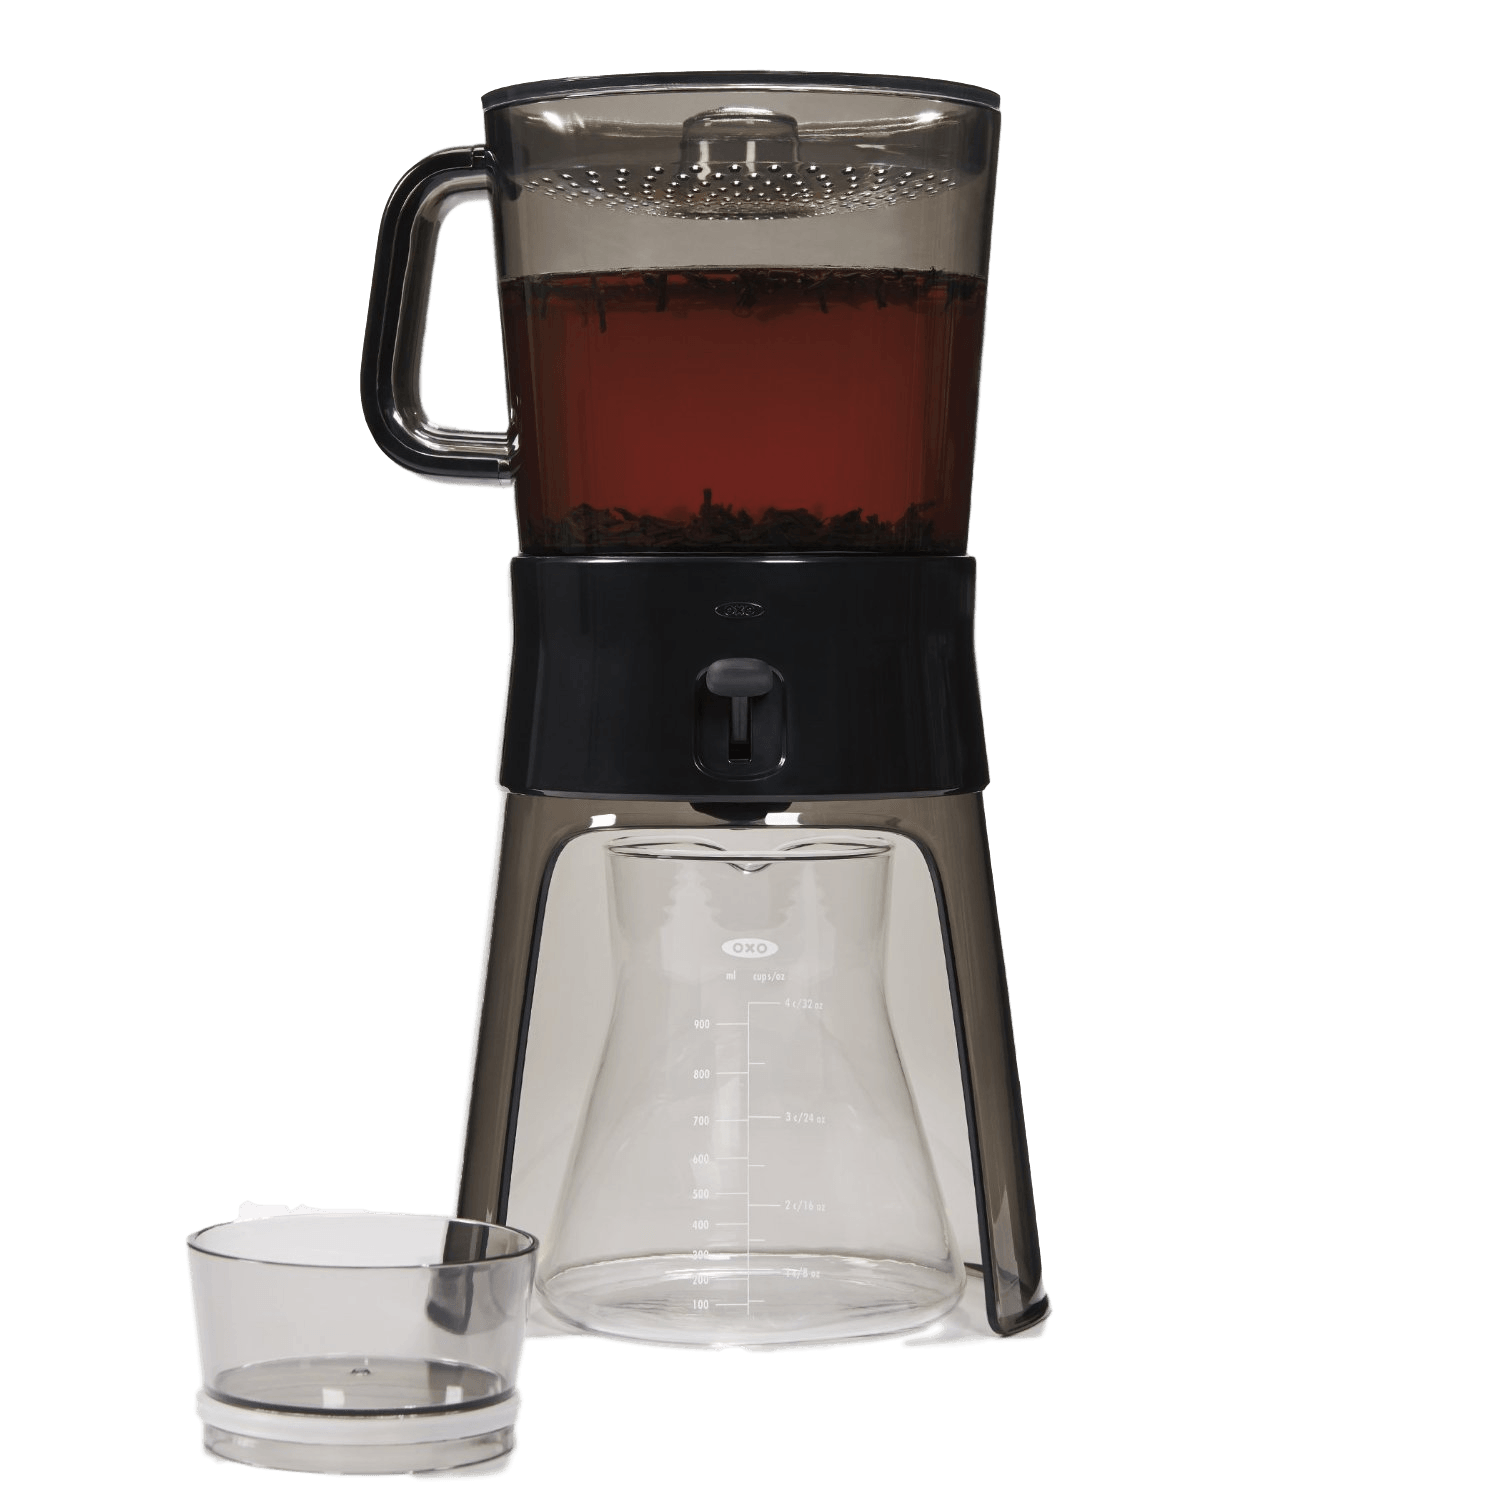 Oxo Coffee Maker Reviews : A Review Of The OXO Cold Brew Coffee Maker - Home Grounds